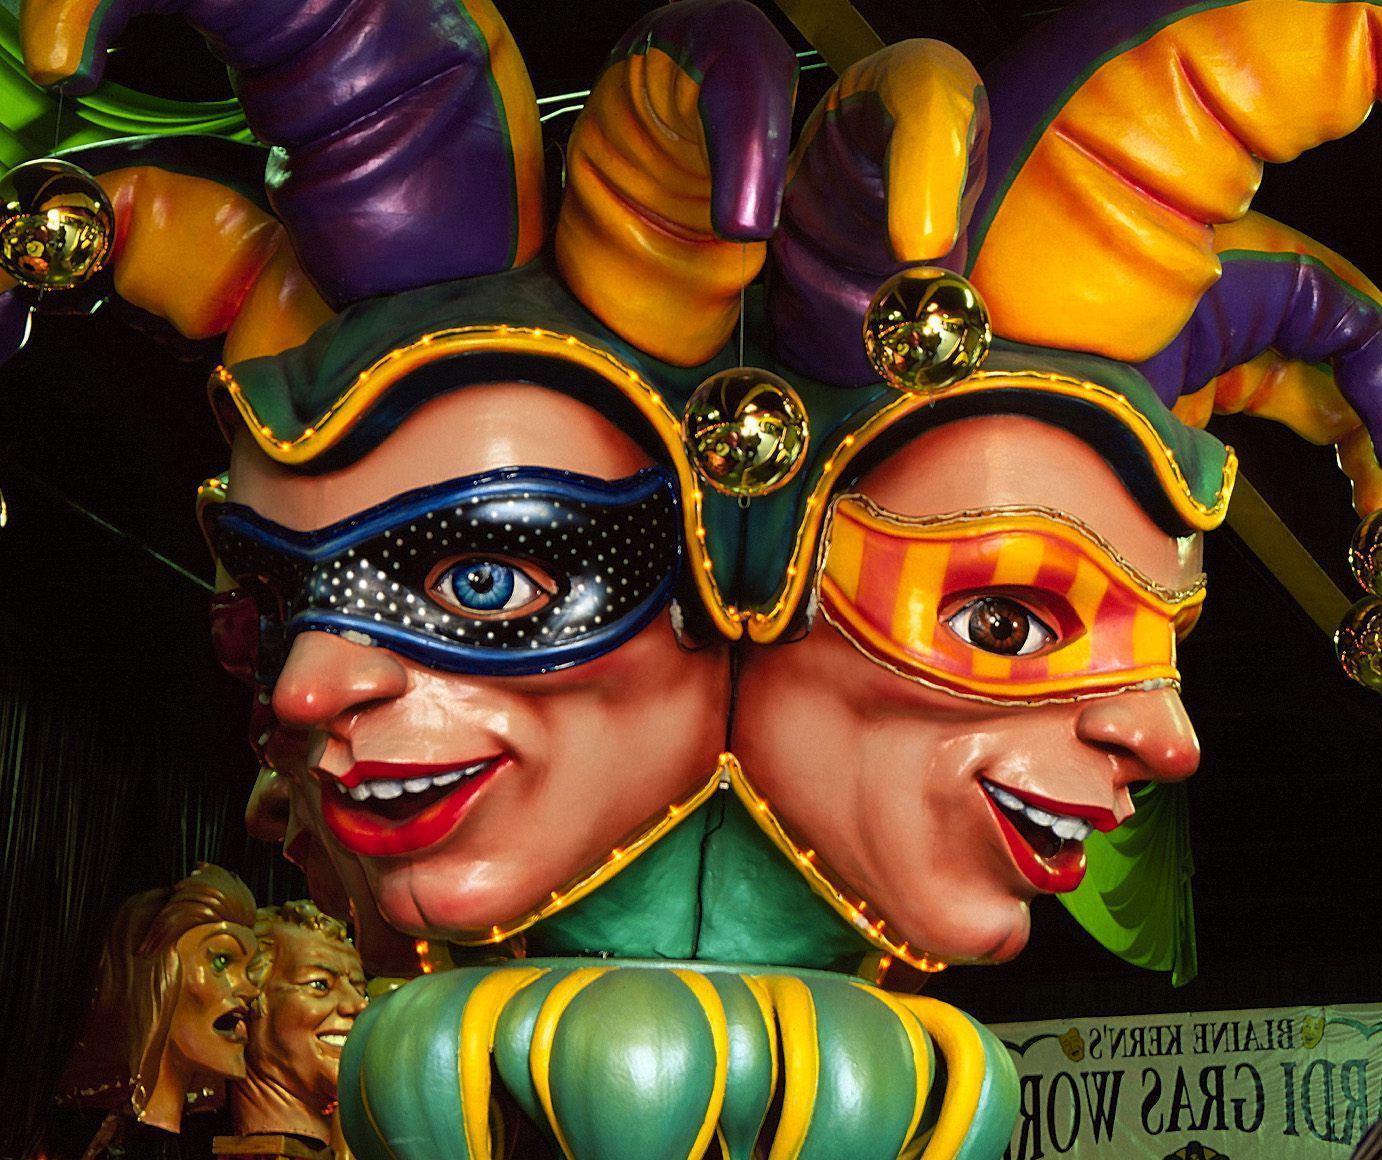 A Month of Mardi Gras in New